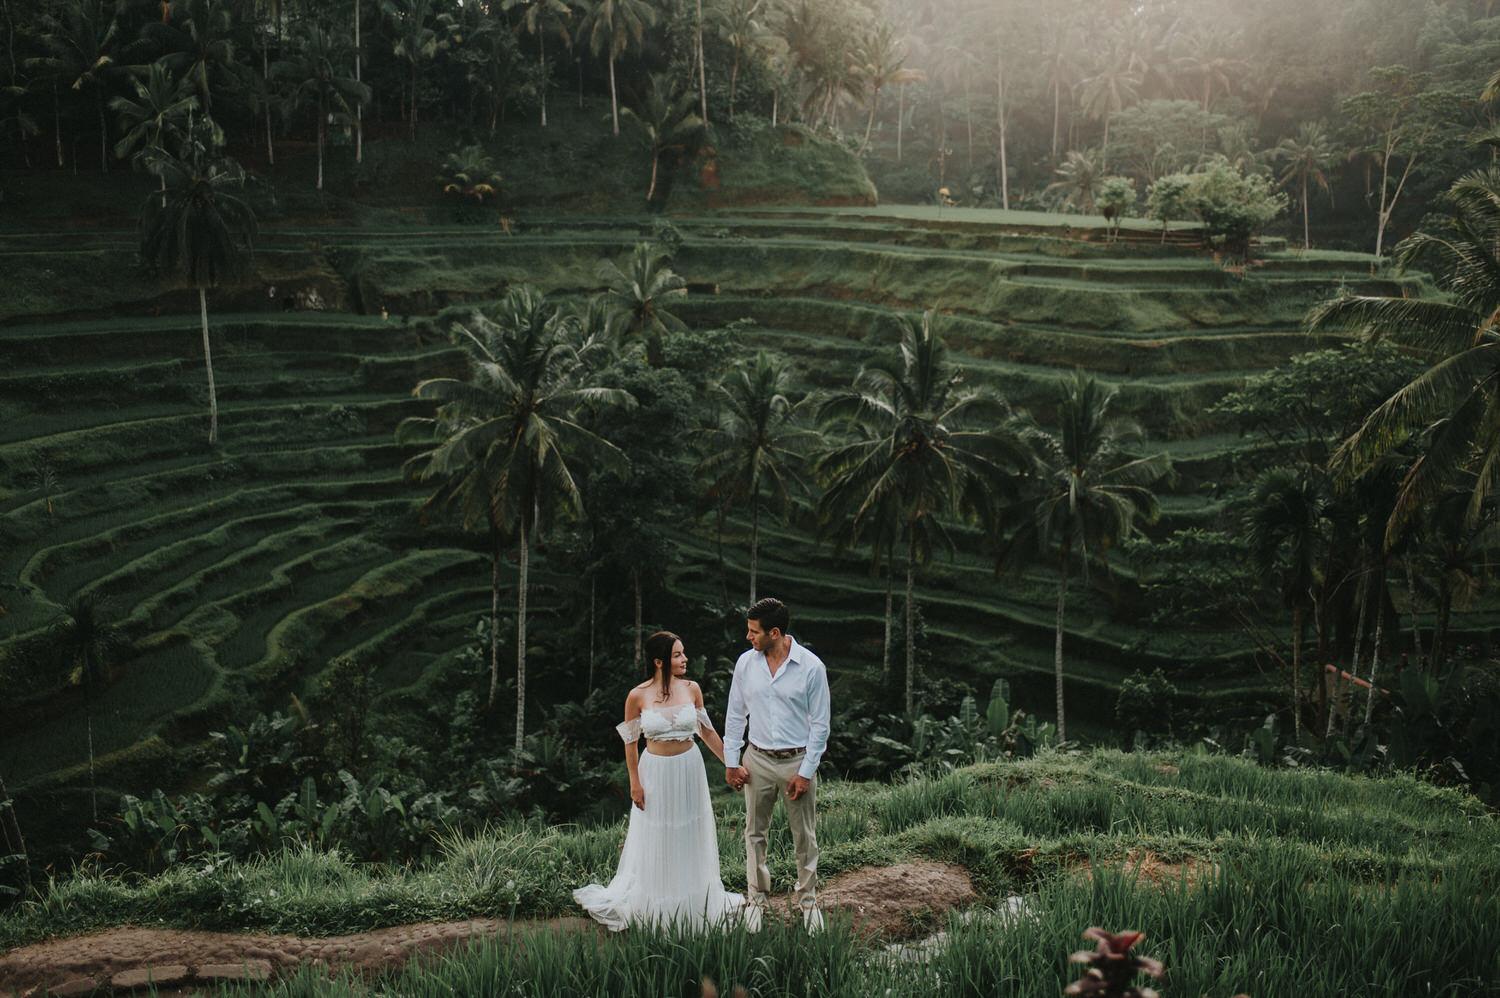 bali wedding - elopement - ubud wedding - diktatphotography - olga + Jason - 6